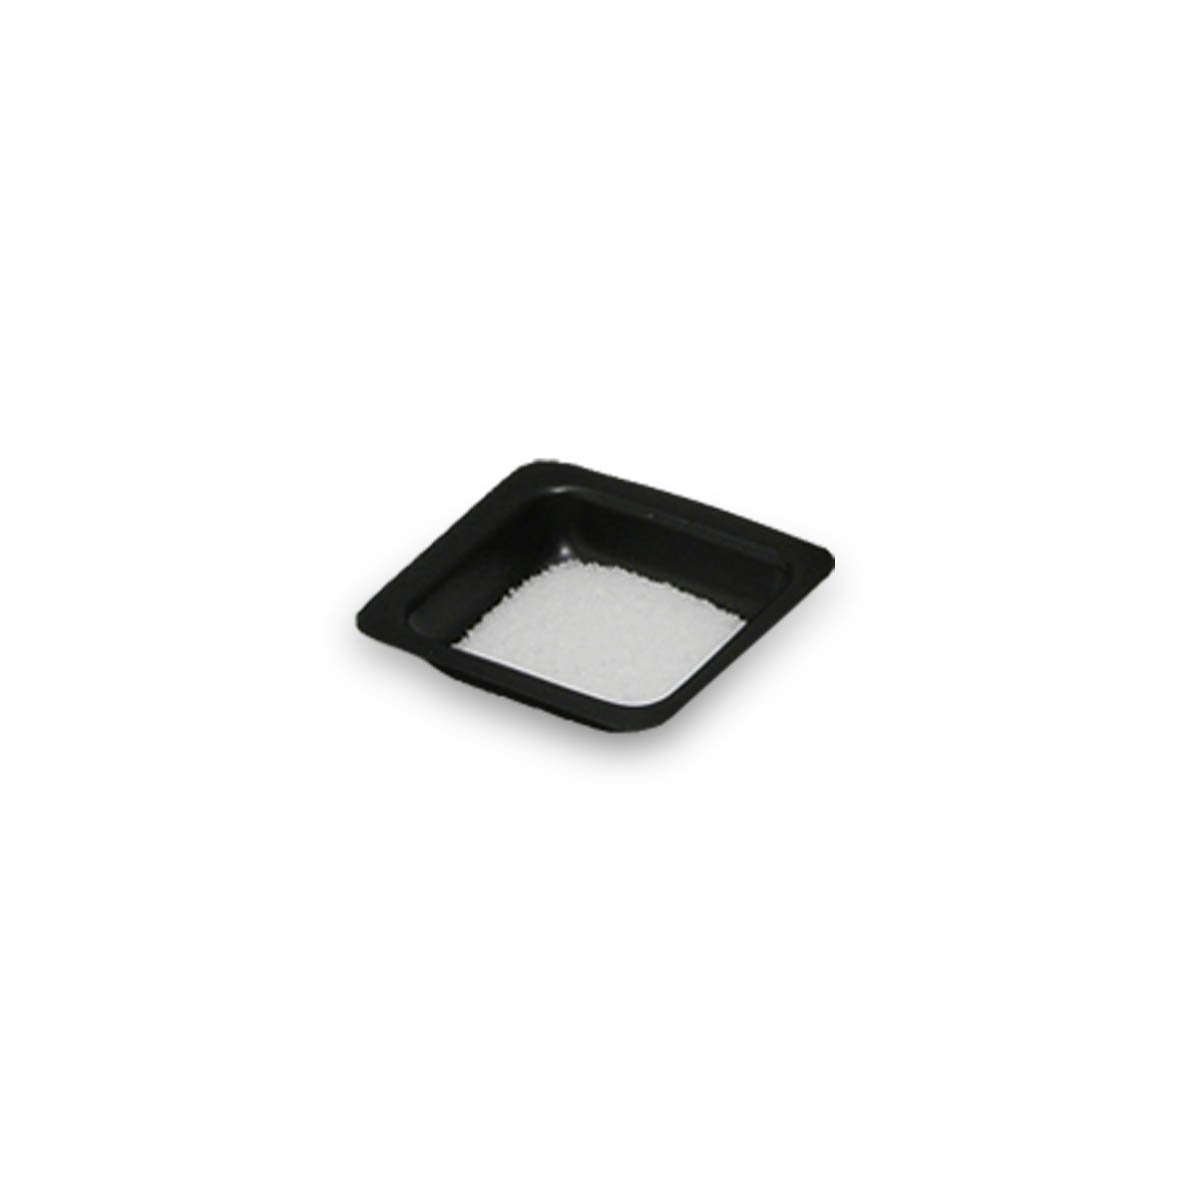 20mL Black Antistatic Polystyrene Square Weigh Boat (500/Pack)